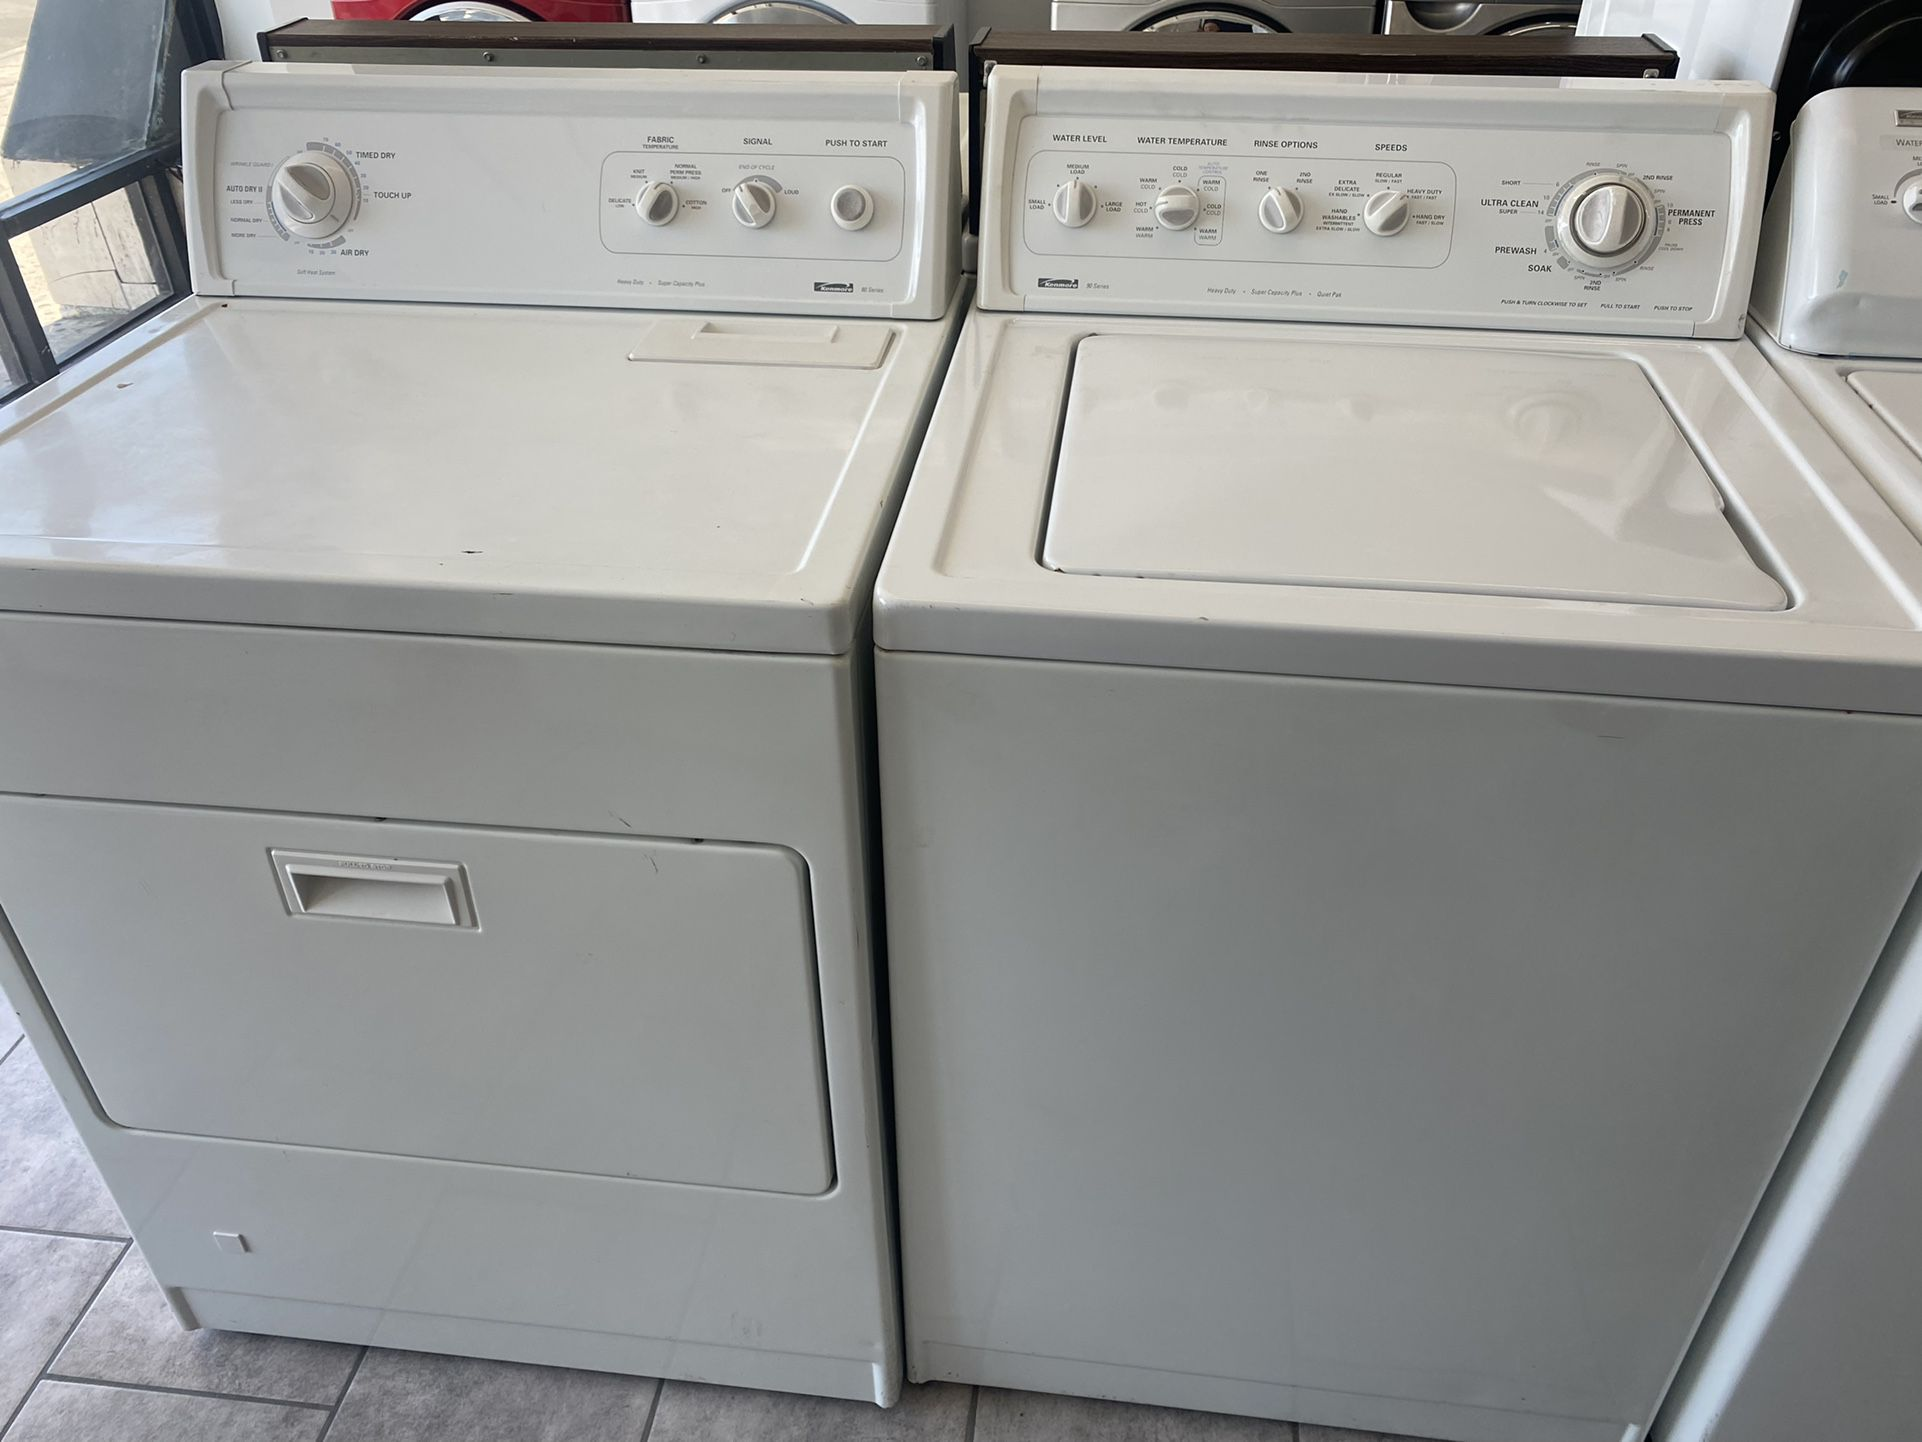 $450 Kenmore washer and dryer set with delivery in the San Fernando Valley